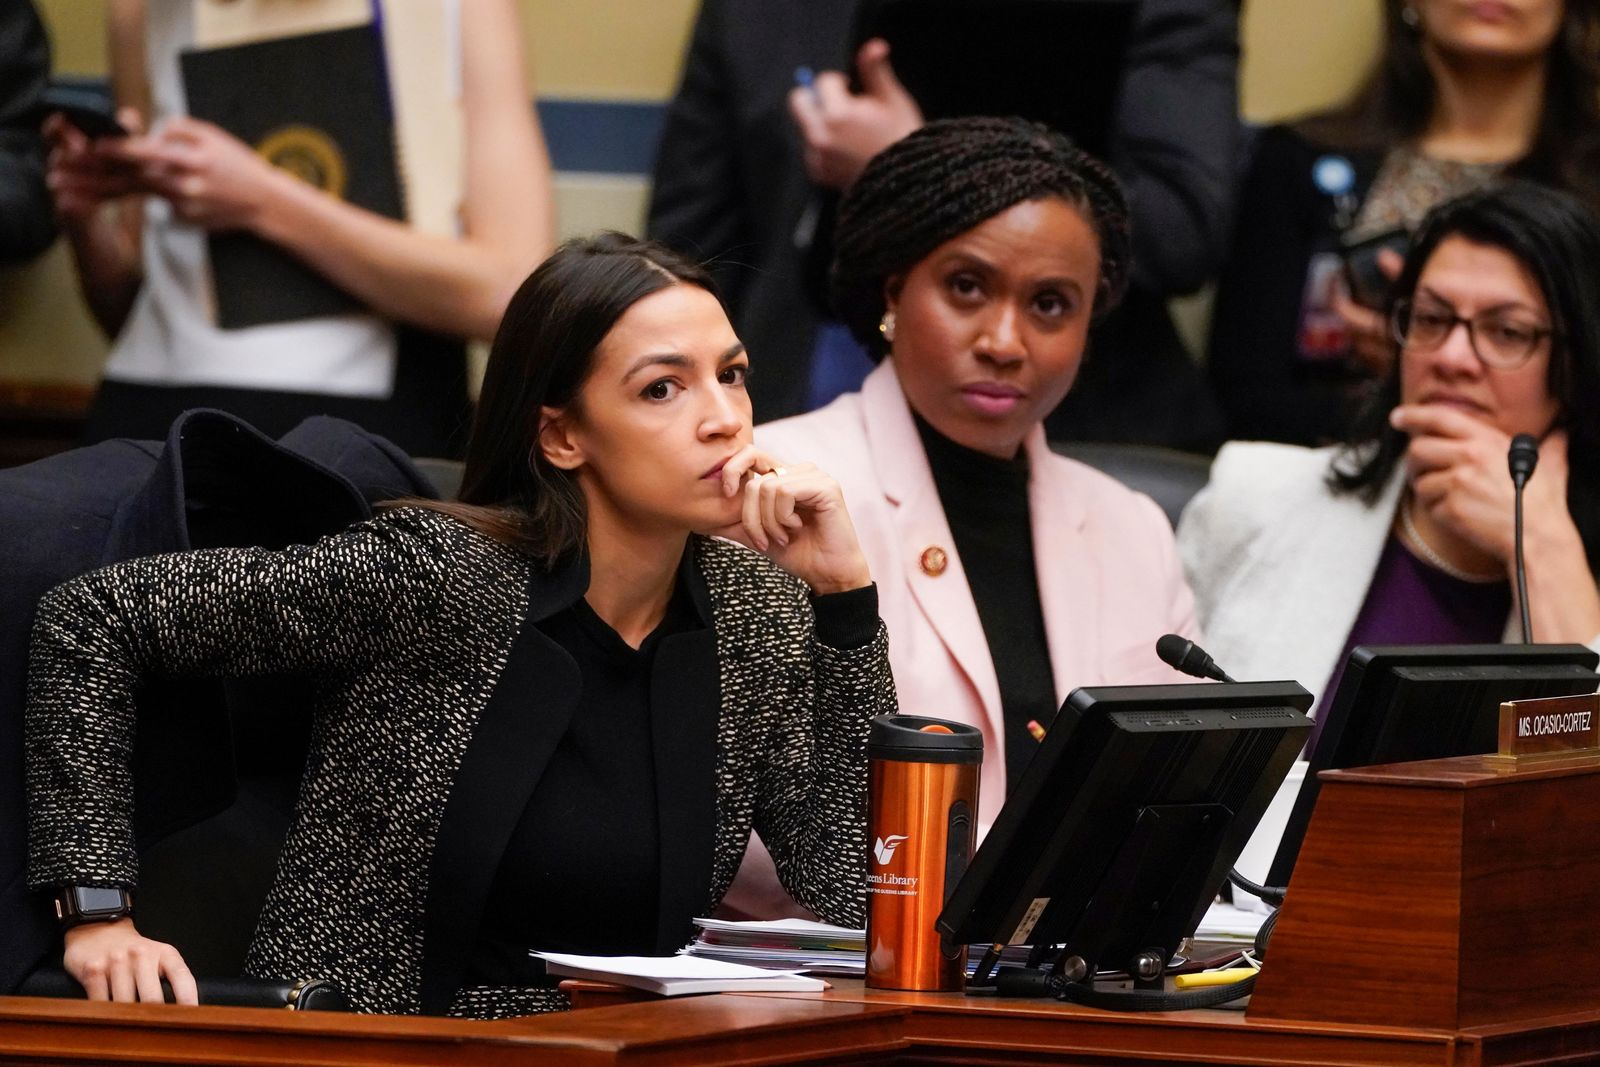 House Oversight and Reform Committee members, from left, Rep. Alexandria Ocasio-Cortez, D-N.Y., Rep. Ayanna Pressley, D-Mass., and Rep. Rashida Tlaib, D-Mich., listen during a committee hearing on Capitol Hill in Washington, Tuesday, Feb. 26, 2019. The committee voted to subpoena Trump administration officials over family separations at the southern border, the first issued in the new Congress as Democrats have promised to hold the administration aggressively to count.The decision by the Oversight Committee will compel the heads of Justice, Homeland Security and Health and Human Services to deliver documents.  (AP Photo/J. Scott Applewhite)